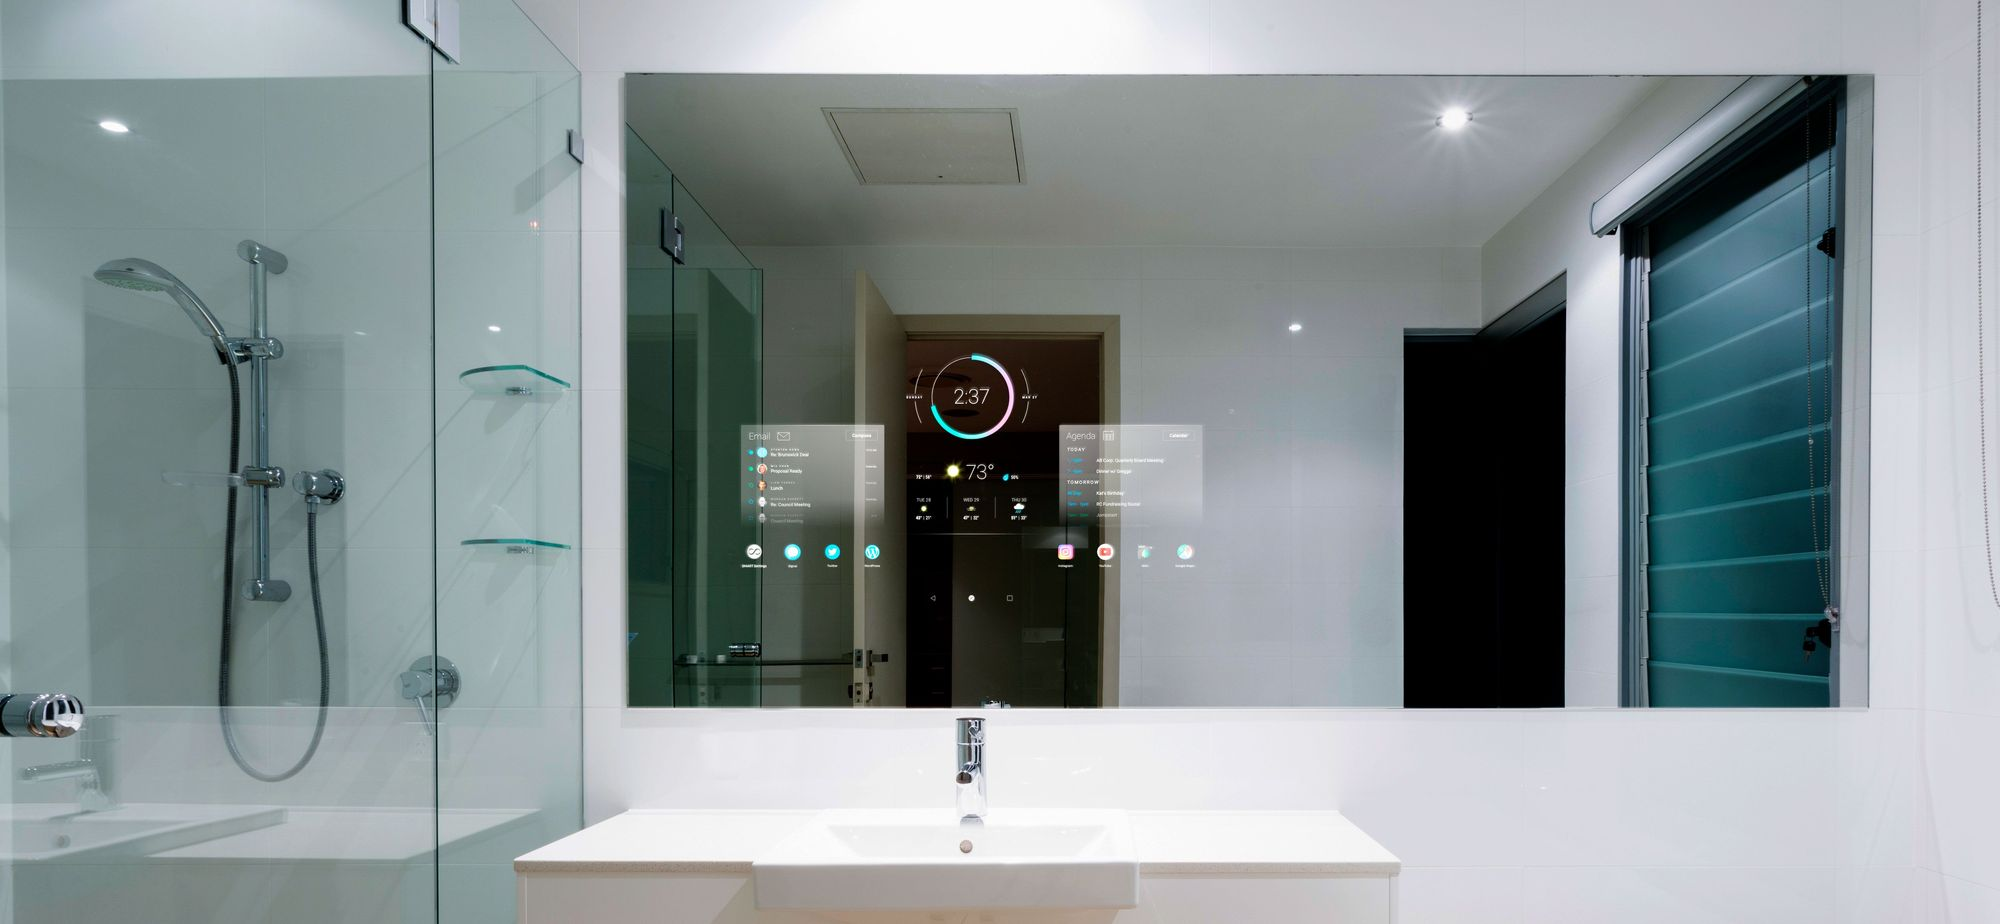 What Will Bathrooms Look Like in the Future?